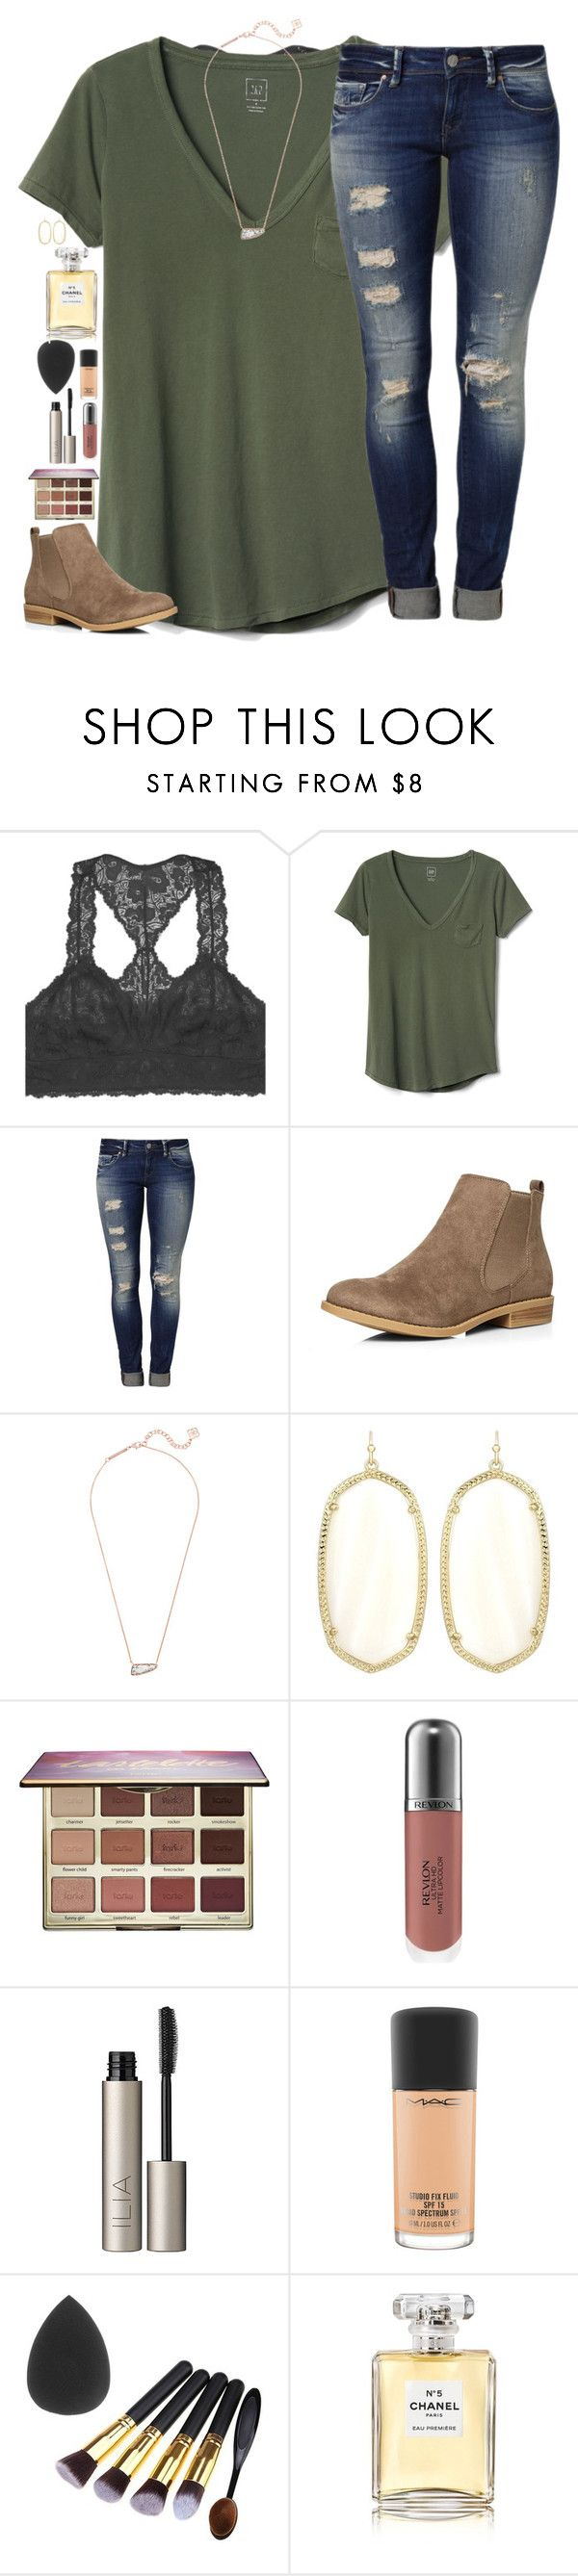 """Untitled #1661"" by southernstruttin ❤ liked on Polyvore featuring Youmita, Gap, Mavi, Dorothy Perkins, Kendra Scott, tarte, Revlon, Ilia, MAC Cosmetics and Chanel"